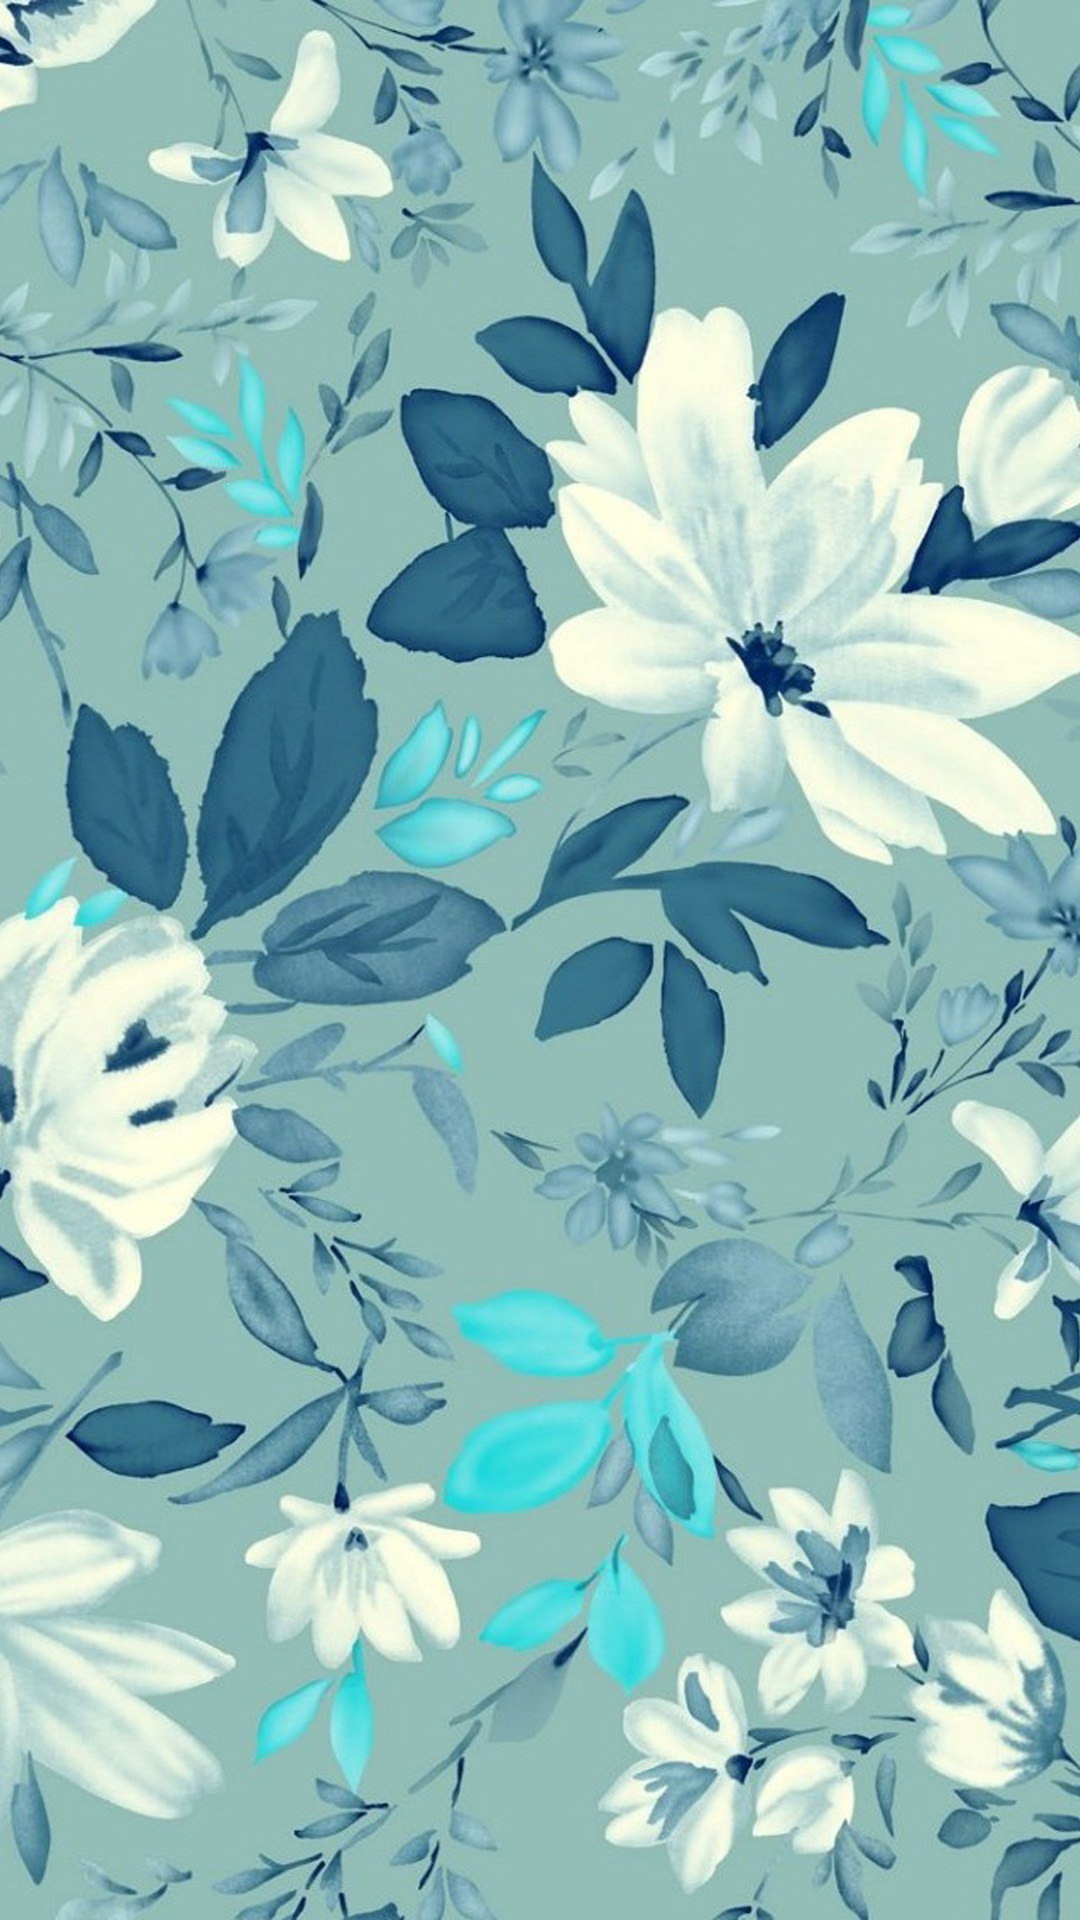 Free Download Best Samsung Galaxy S5 Wallpapers Pattern 122 Samsung Galaxy S5 1080x1920 For Your Desktop Mobile Tablet Explore 40 Best Samsung Galaxy S5 Wallpapers Samsung Galaxy Wallpaper Free